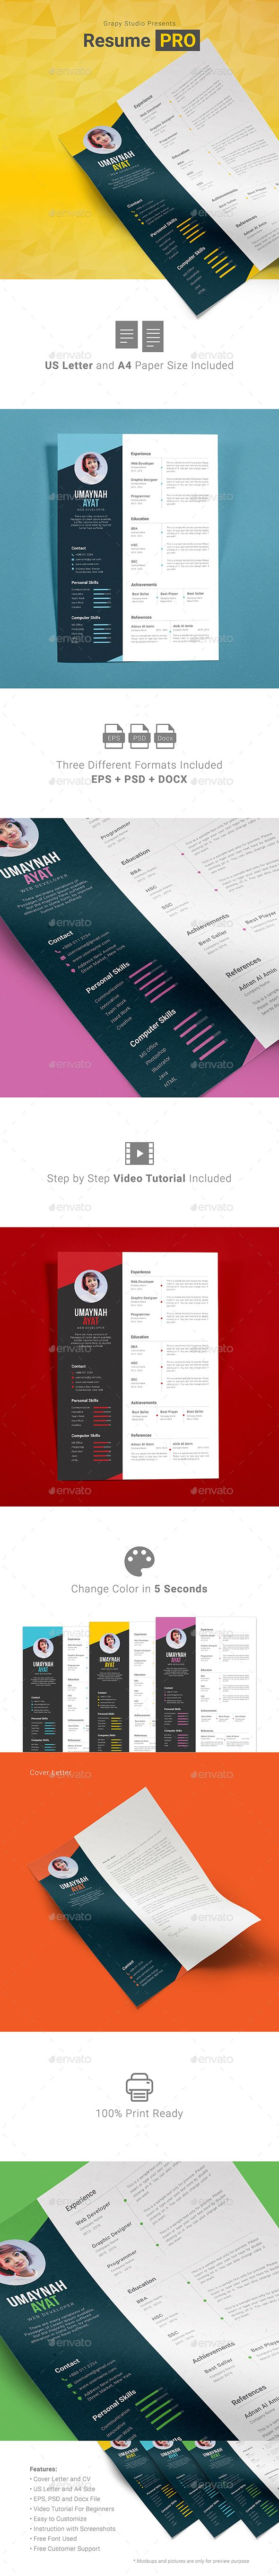 Resume PRO Template PSD, Vector EPS. Download here: http://graphicriver.net/item/resume-pro/16442184?ref=ksioks